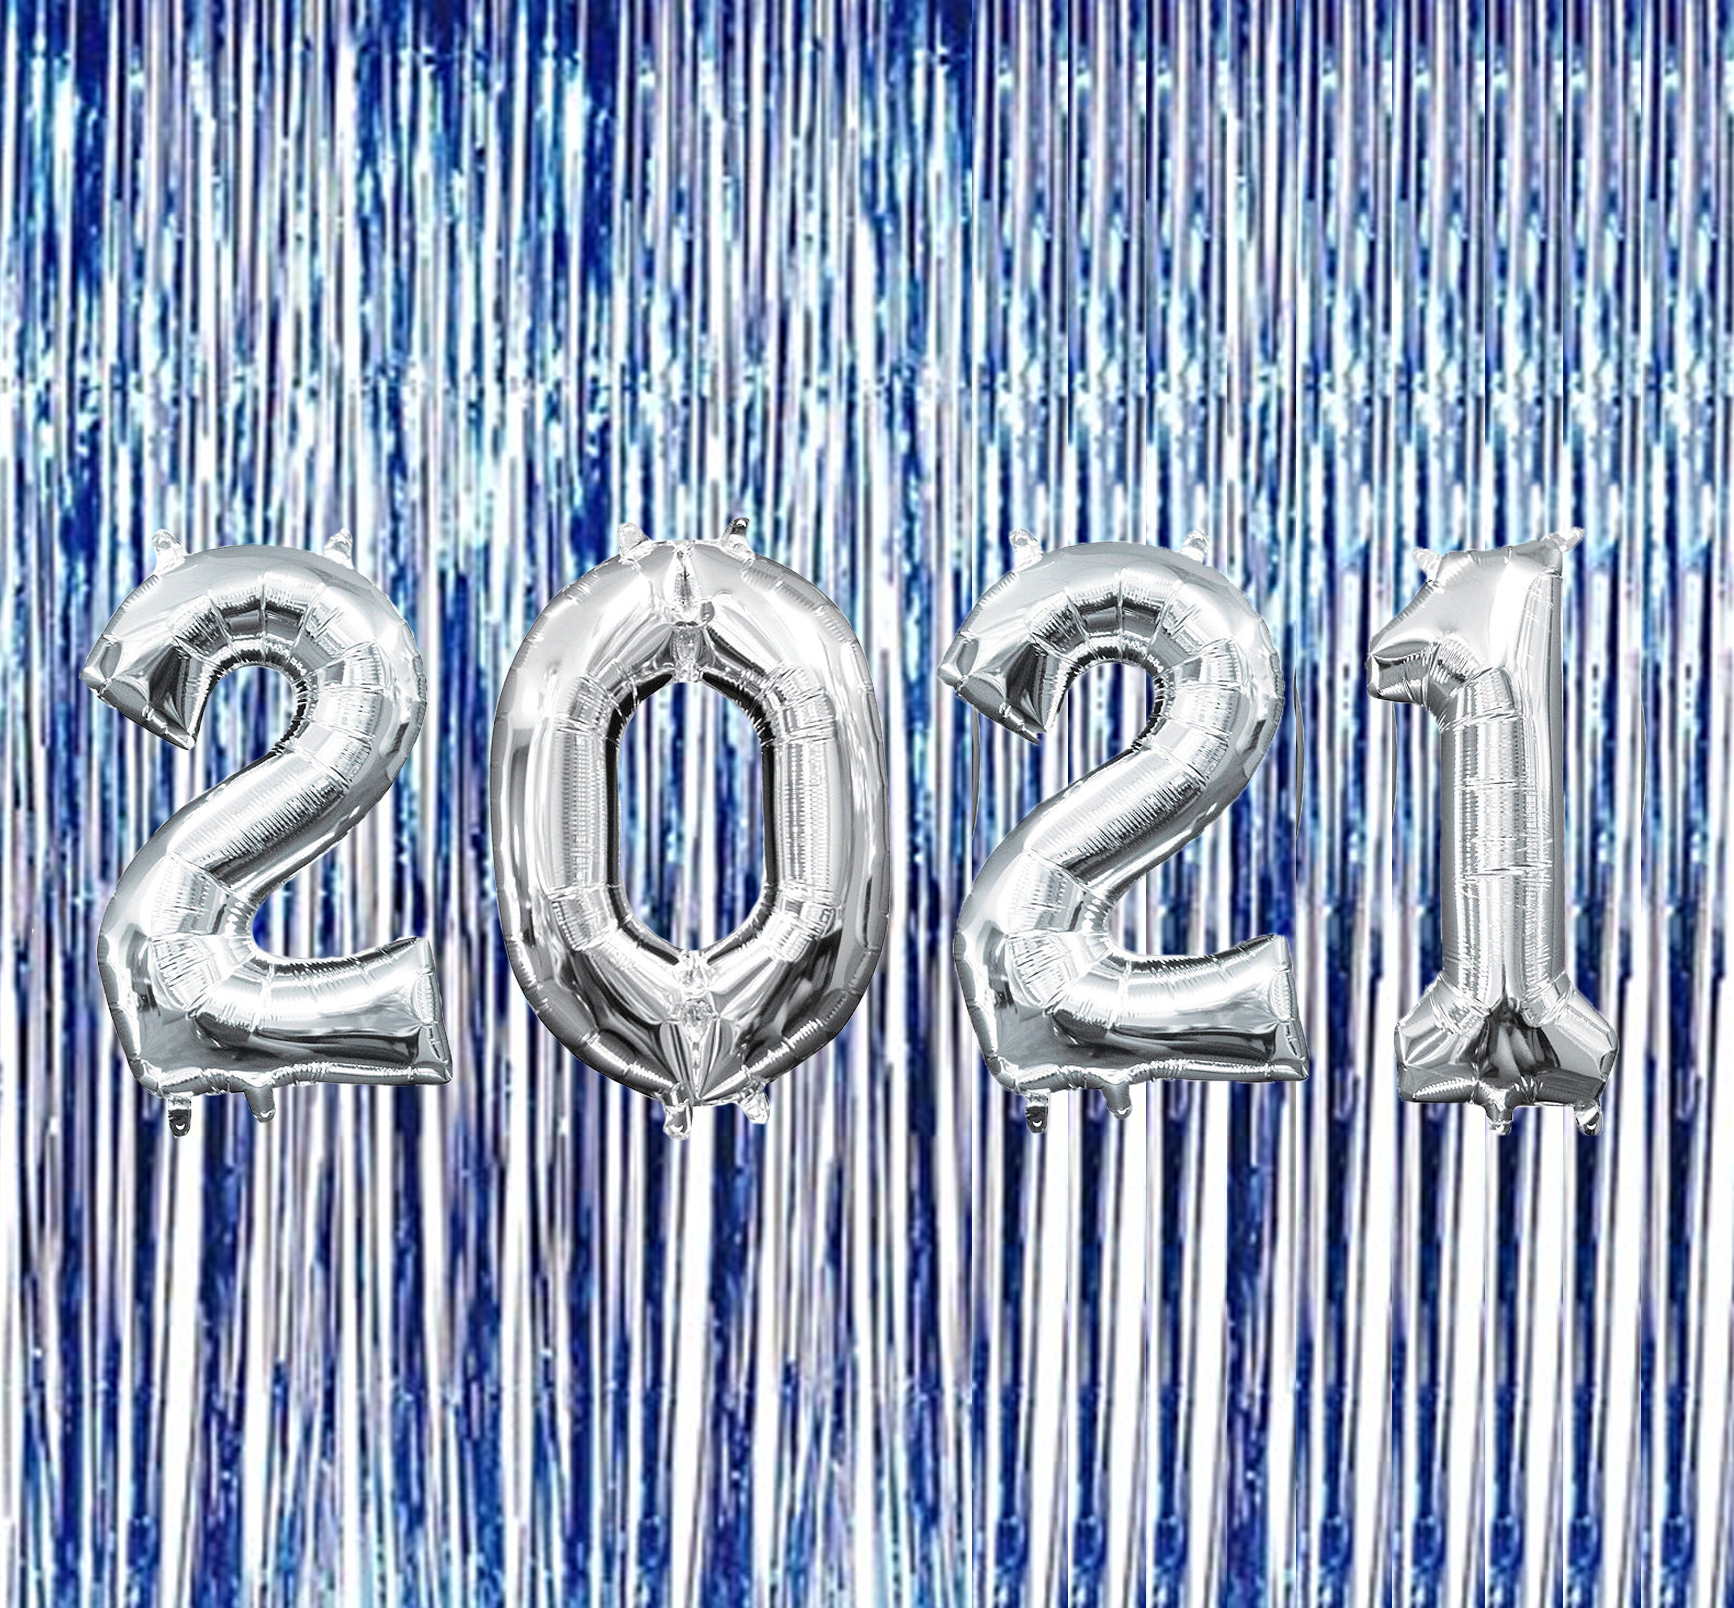 PMU New Year 2021 Silver Balloons with Blue Curtain ...